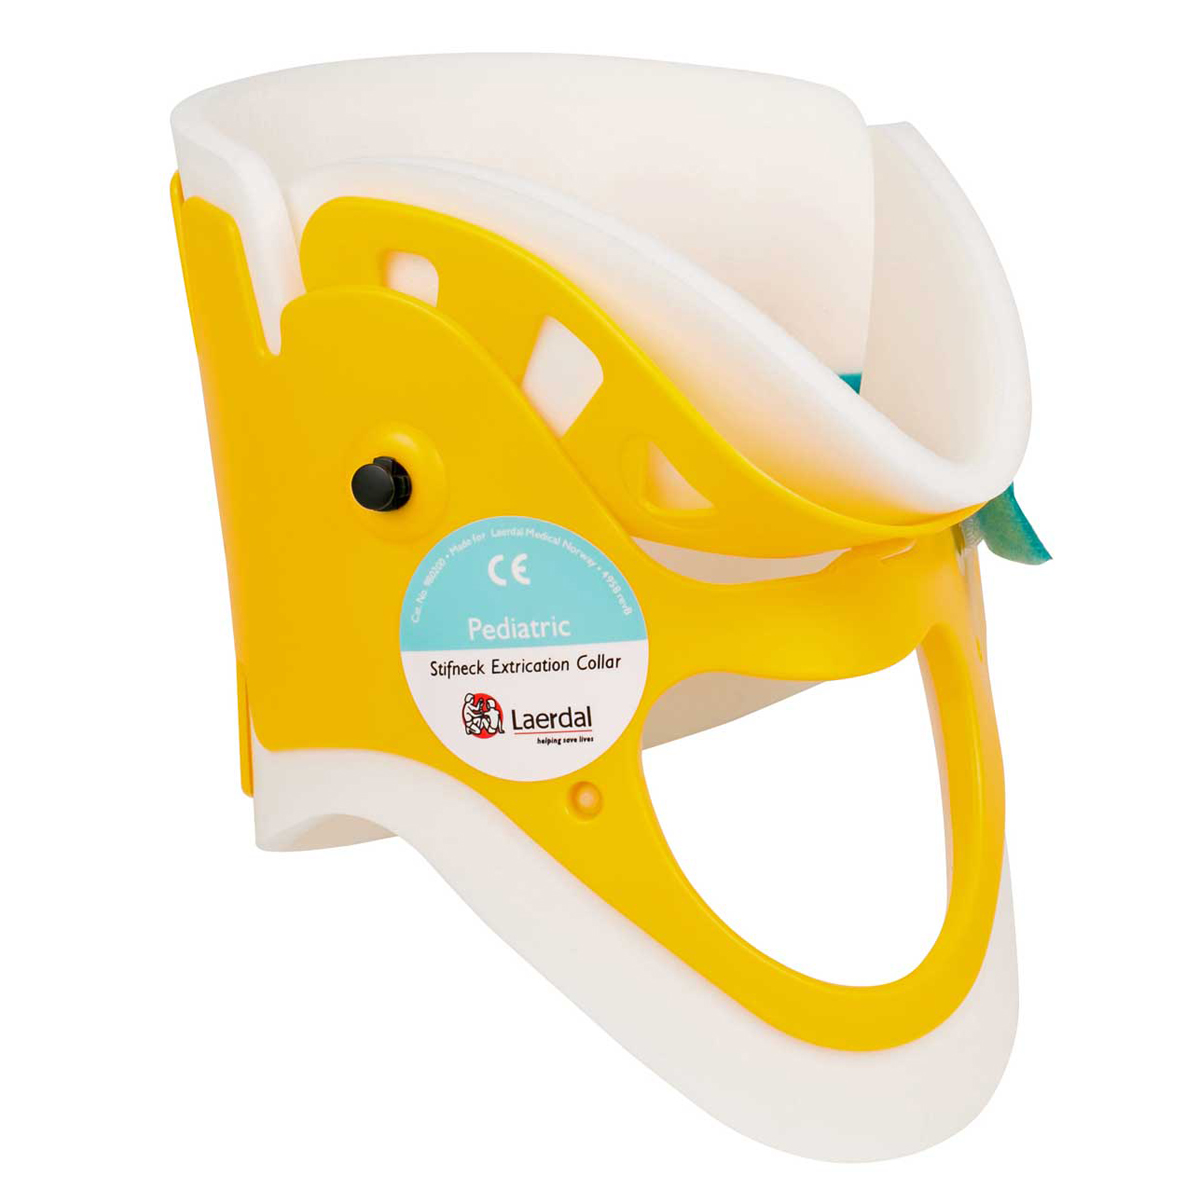 Paediatric Stiffneck Extrication Collar